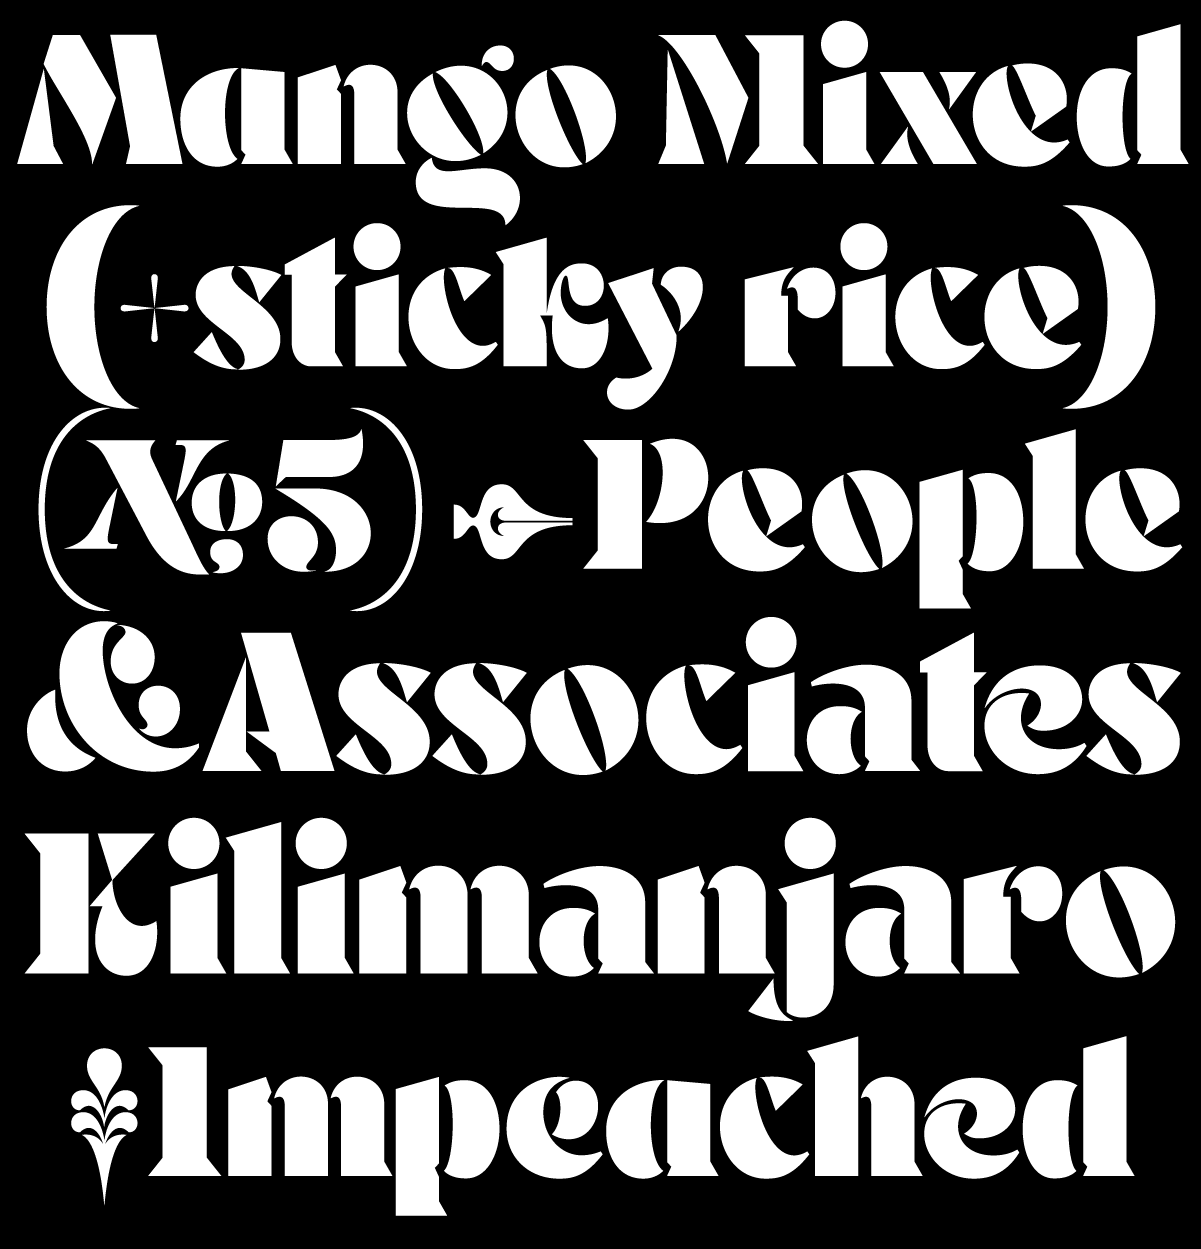 Mr Banks, a new display typeface designed by Andrei Robu for Typeverything.com